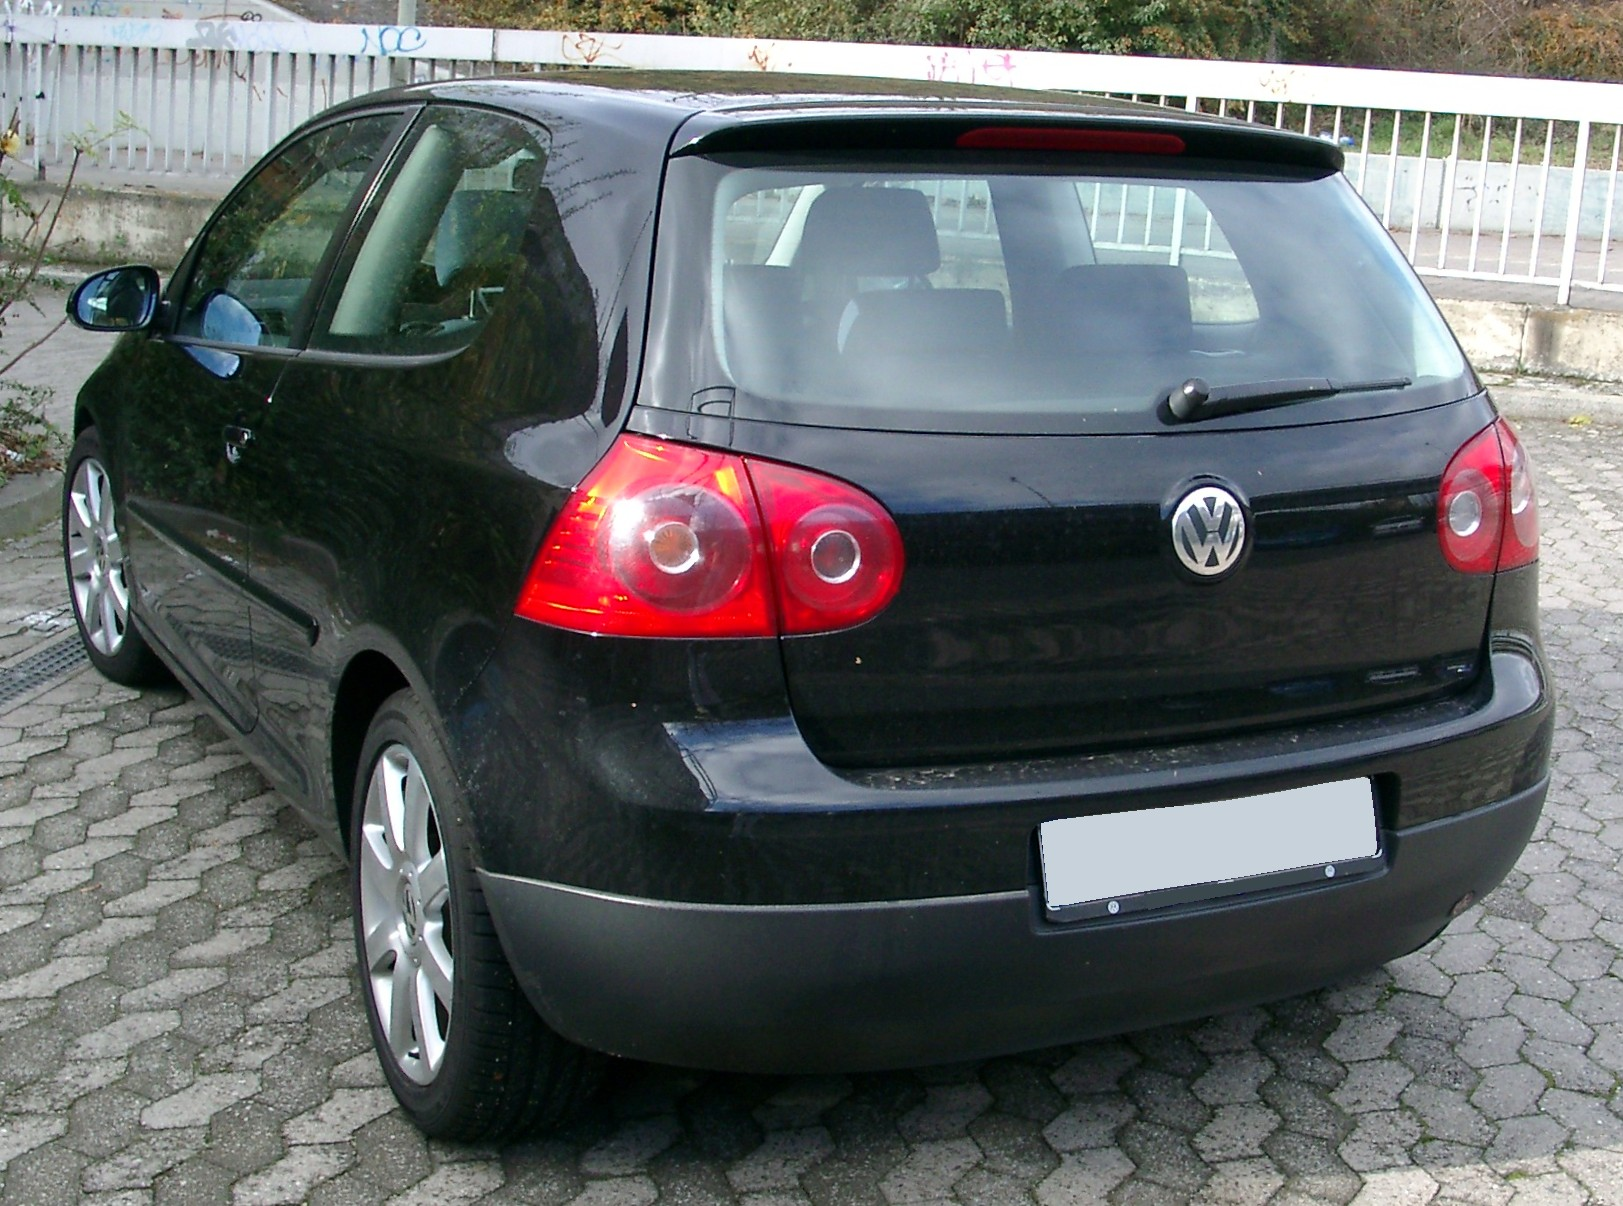 file vw golf v rear wikimedia commons. Black Bedroom Furniture Sets. Home Design Ideas